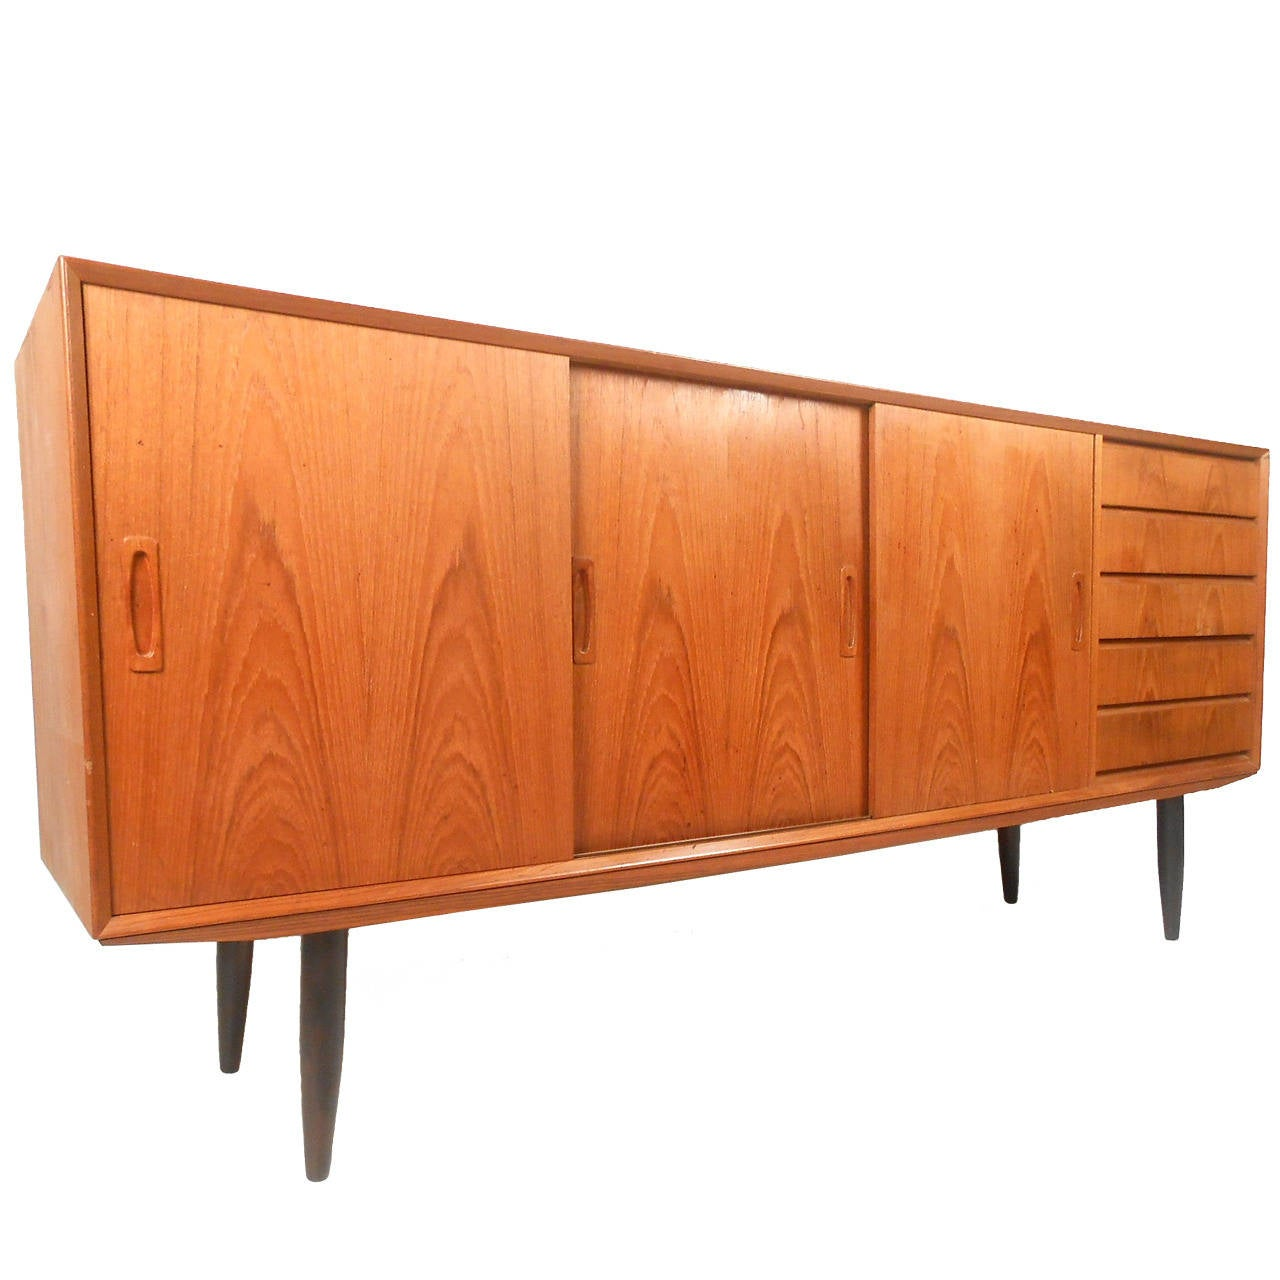 gorgeous mid century modern danish teak sideboard for sale. Black Bedroom Furniture Sets. Home Design Ideas